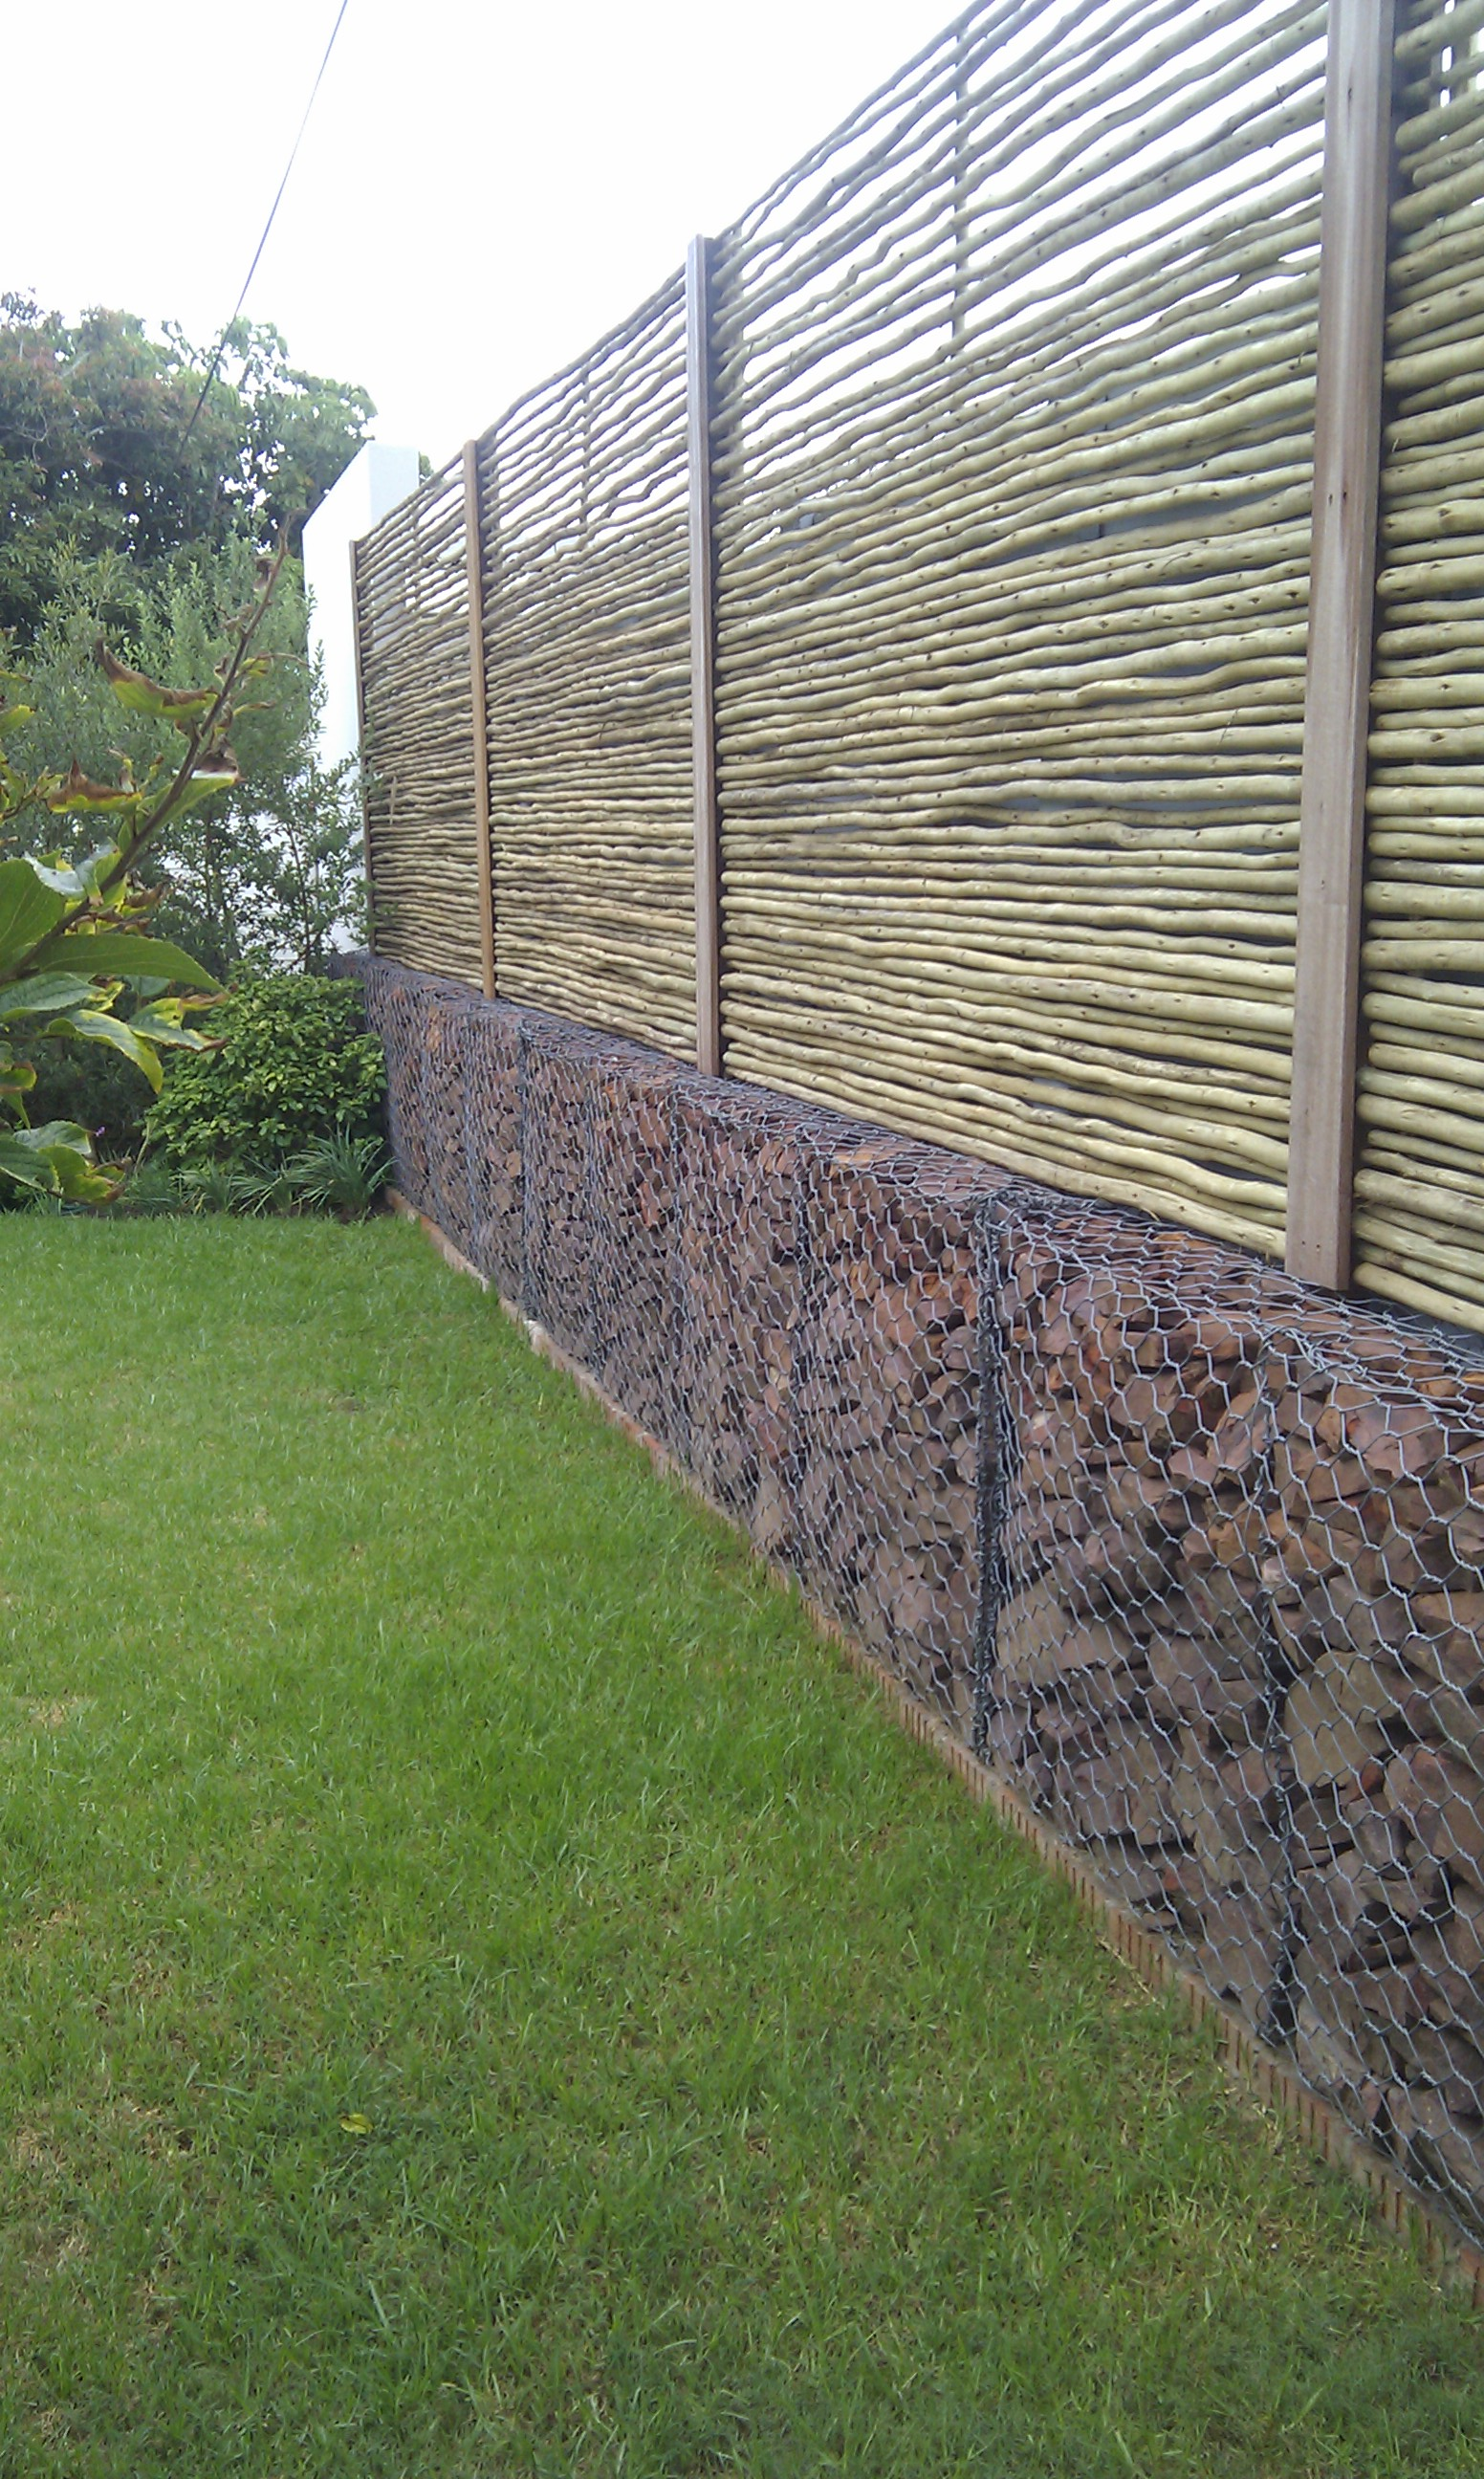 1000 images about gabion on pinterest gabion fence Gabion wall design